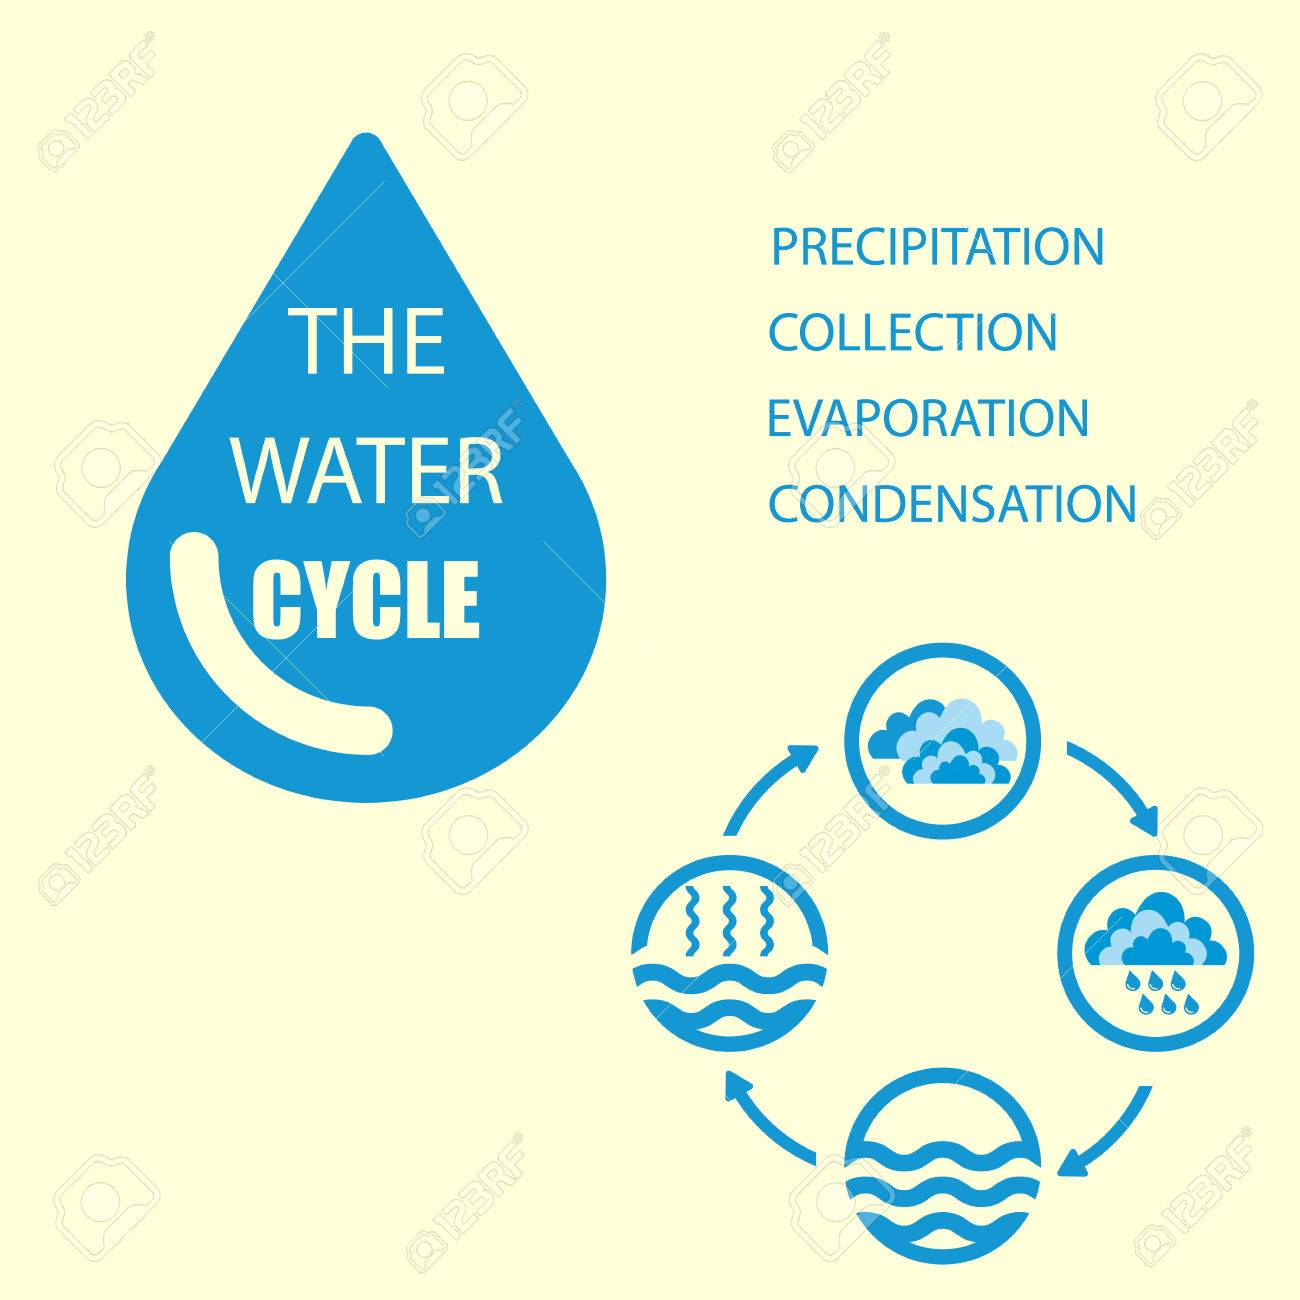 Evaporation Diagram